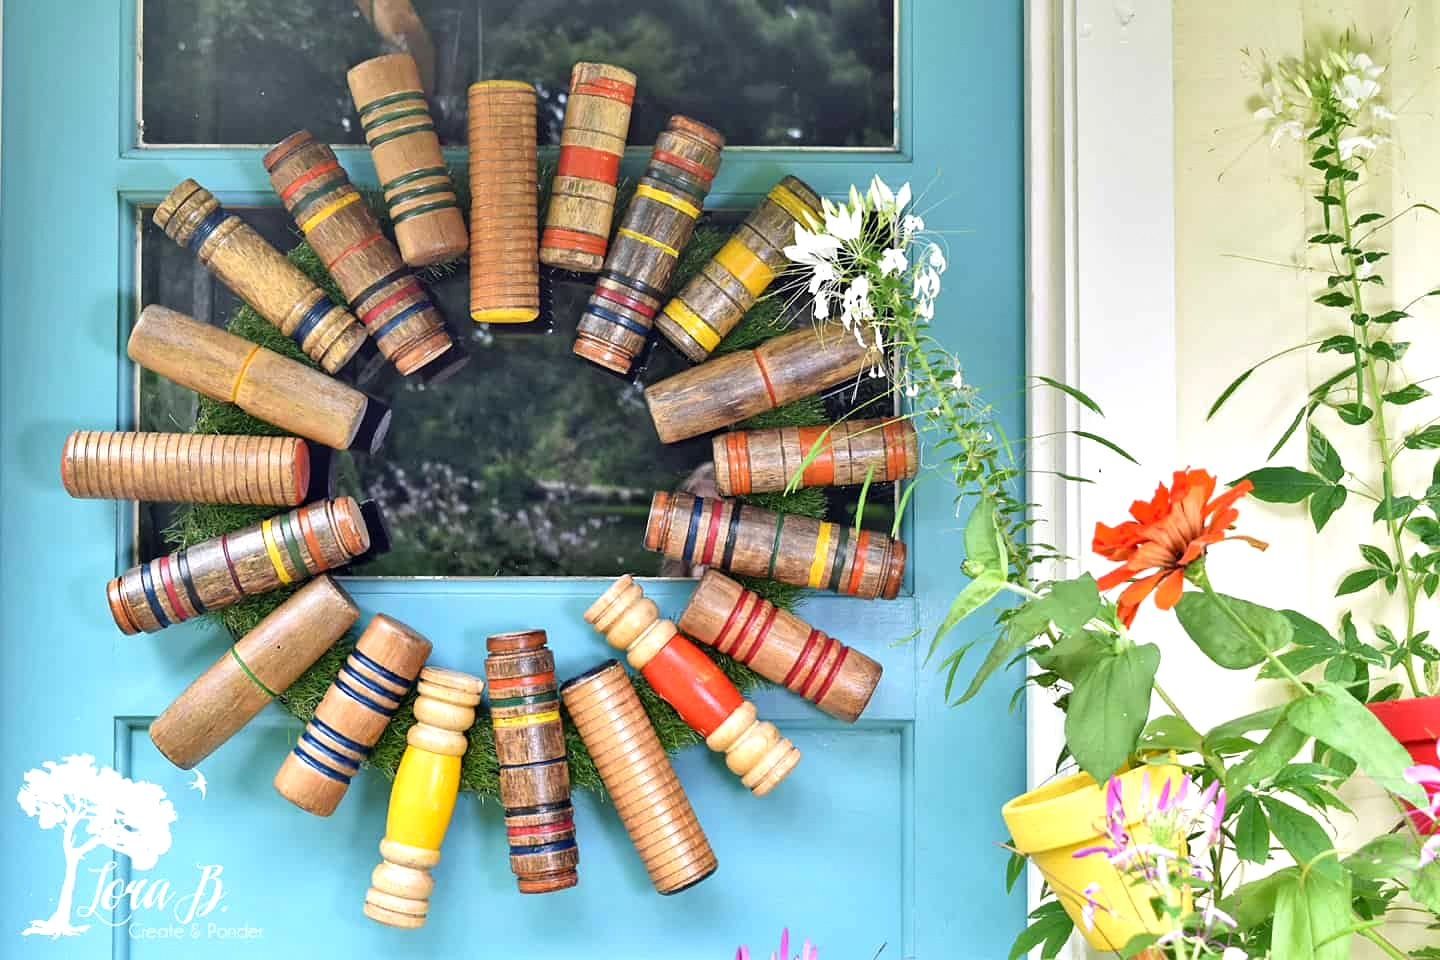 Croquet mallet head door wreath by Lora B, featured on Funky Junk Interiors